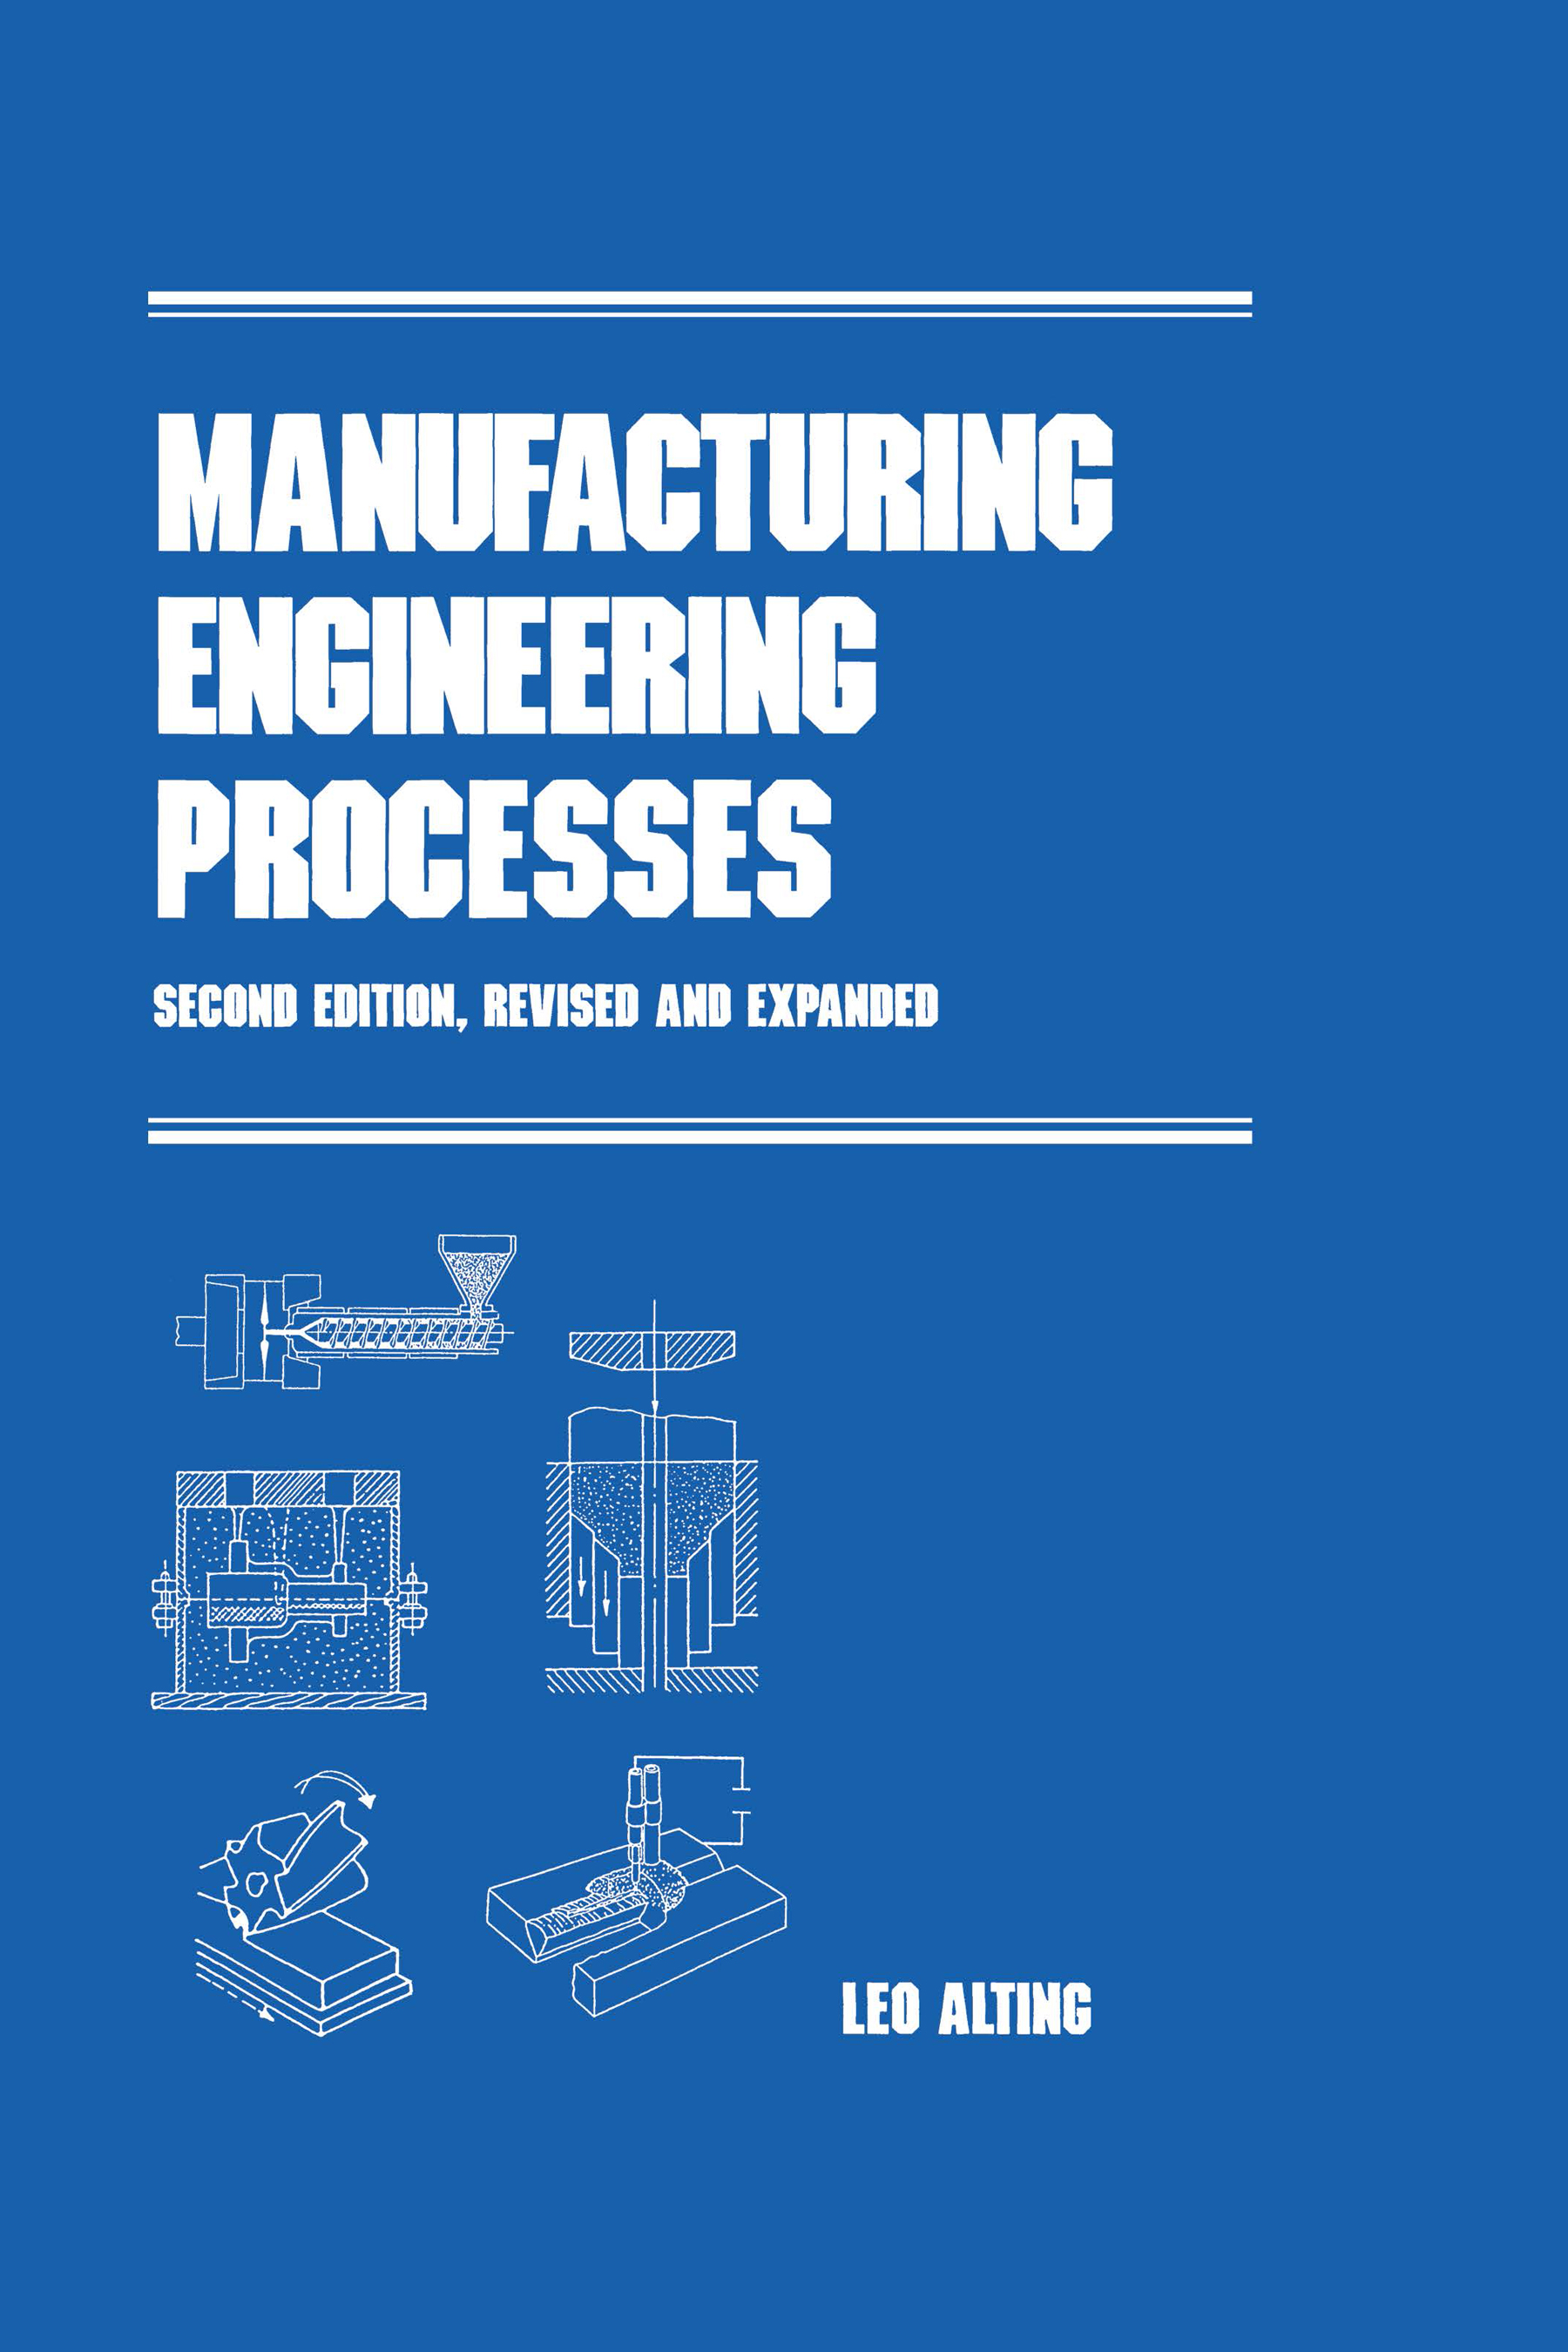 Manufacturing Engineering Processes, Second Edition